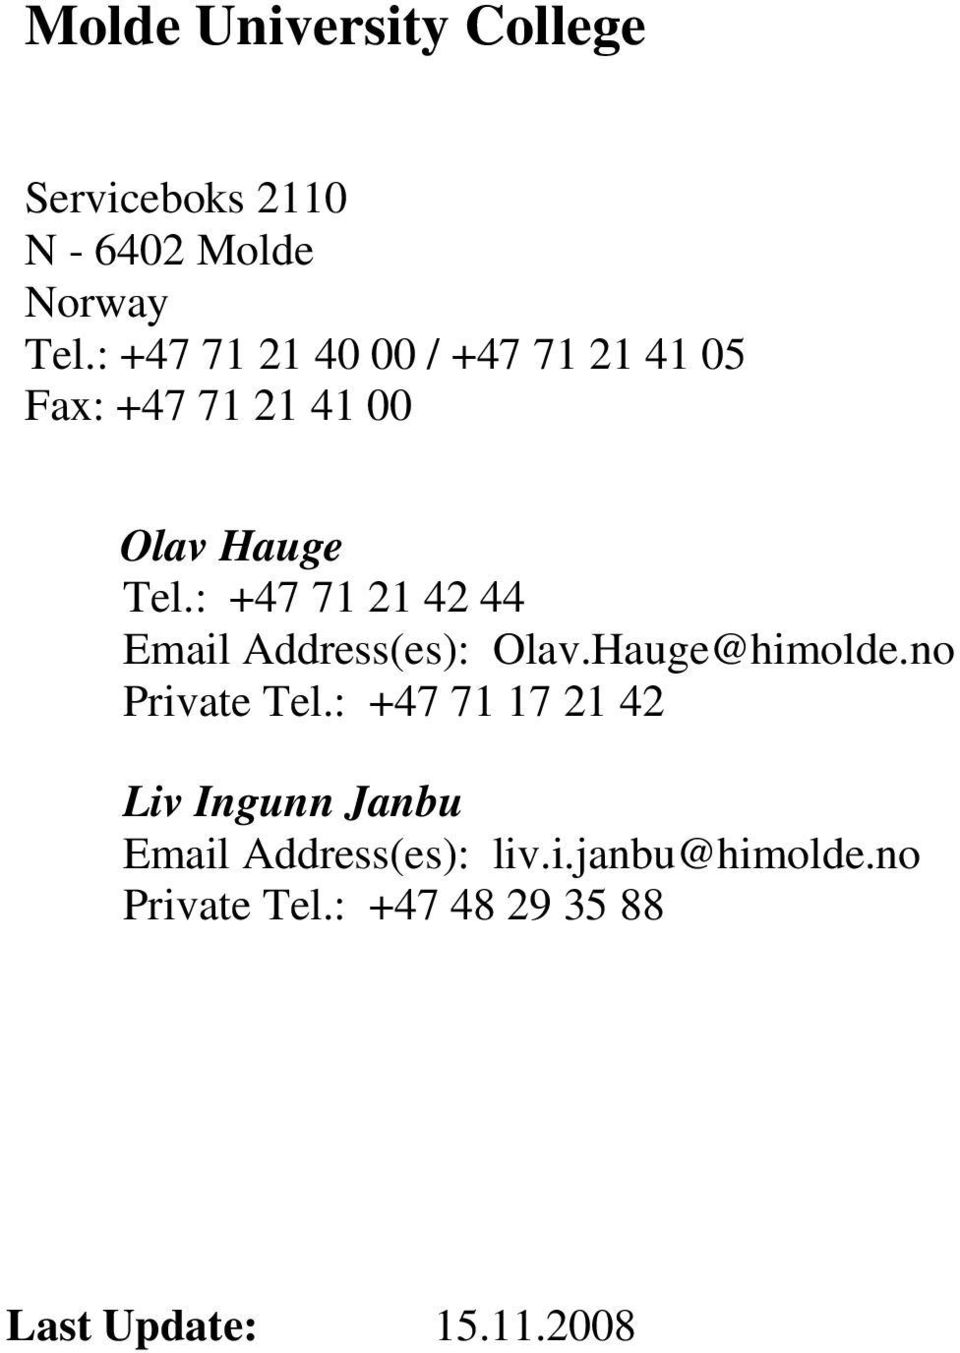 : +47 71 21 42 44 Email Address(es): Olav.Hauge@himolde.no Private Tel.